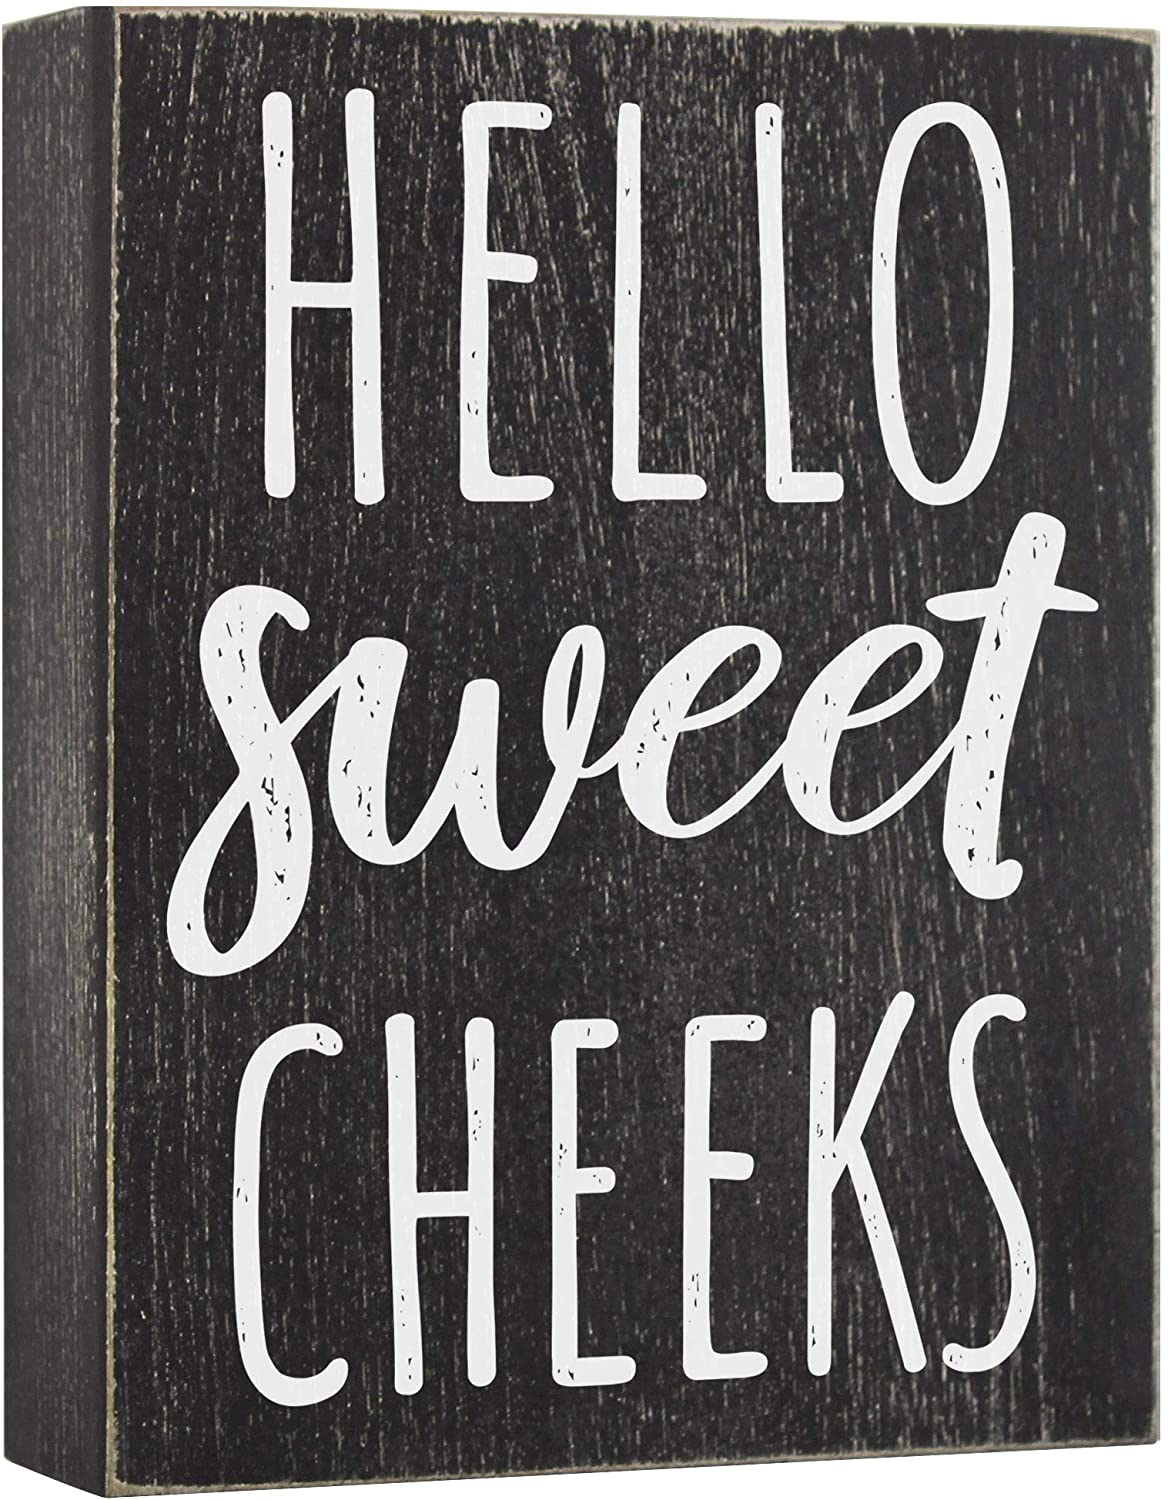 Hello Sweet Cheeks Wood Sign - Farmhouse Bathroom Decorations - 6x8 Wooden Box Plaque Decor with Funny Saying